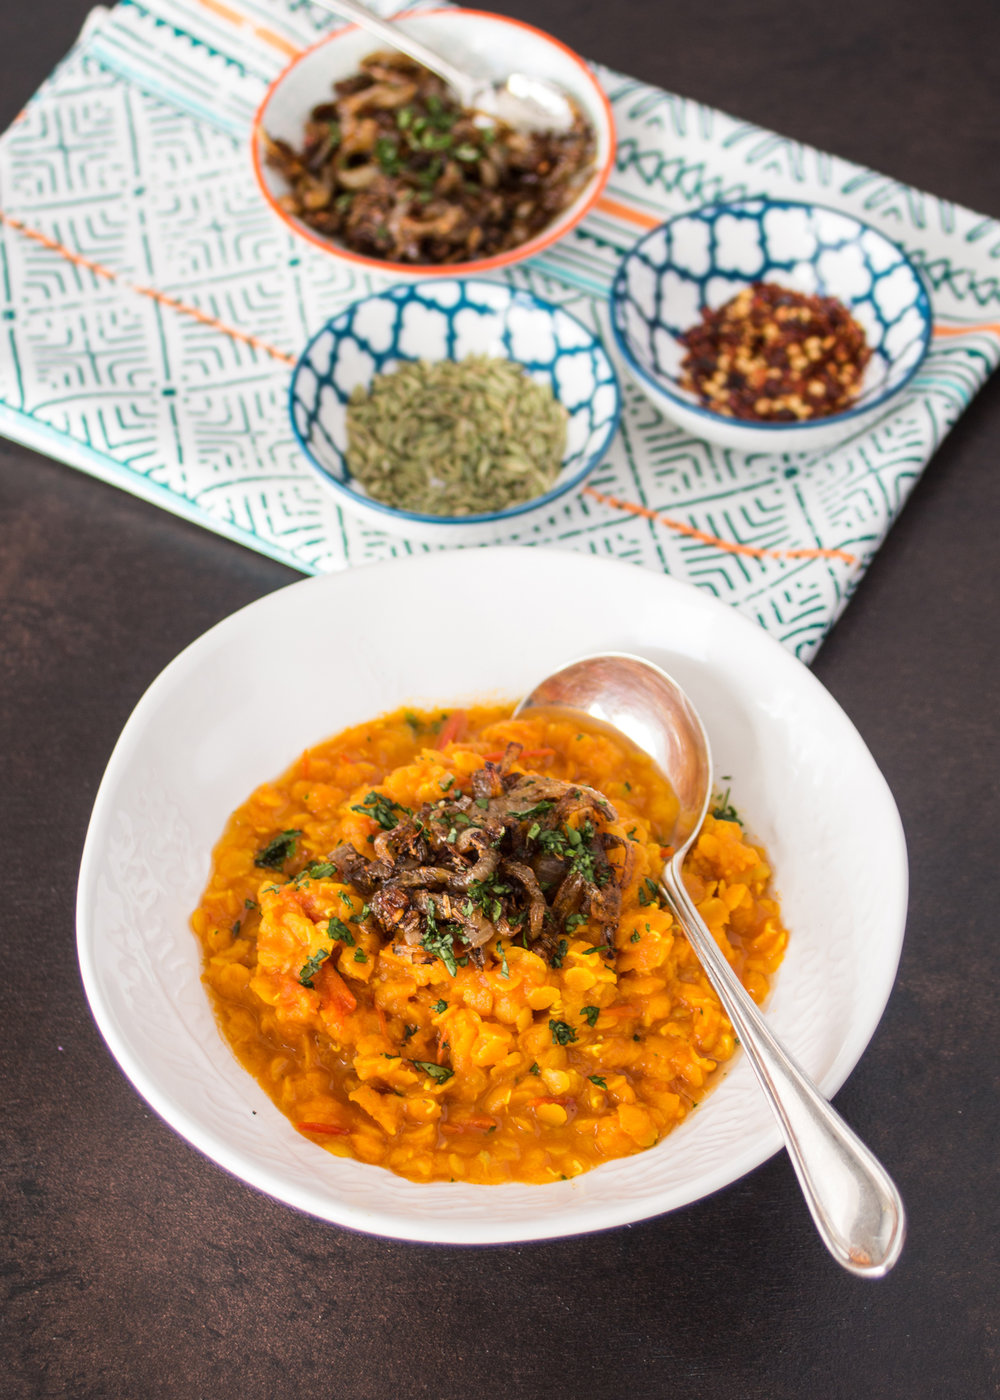 Isle of Wight Tomato Dhal with Shallot Tadka - Cook up a this fab vegan lentil curry. Fragrant, creamy, and packed full of flavour it's the ultimate in comfort food.